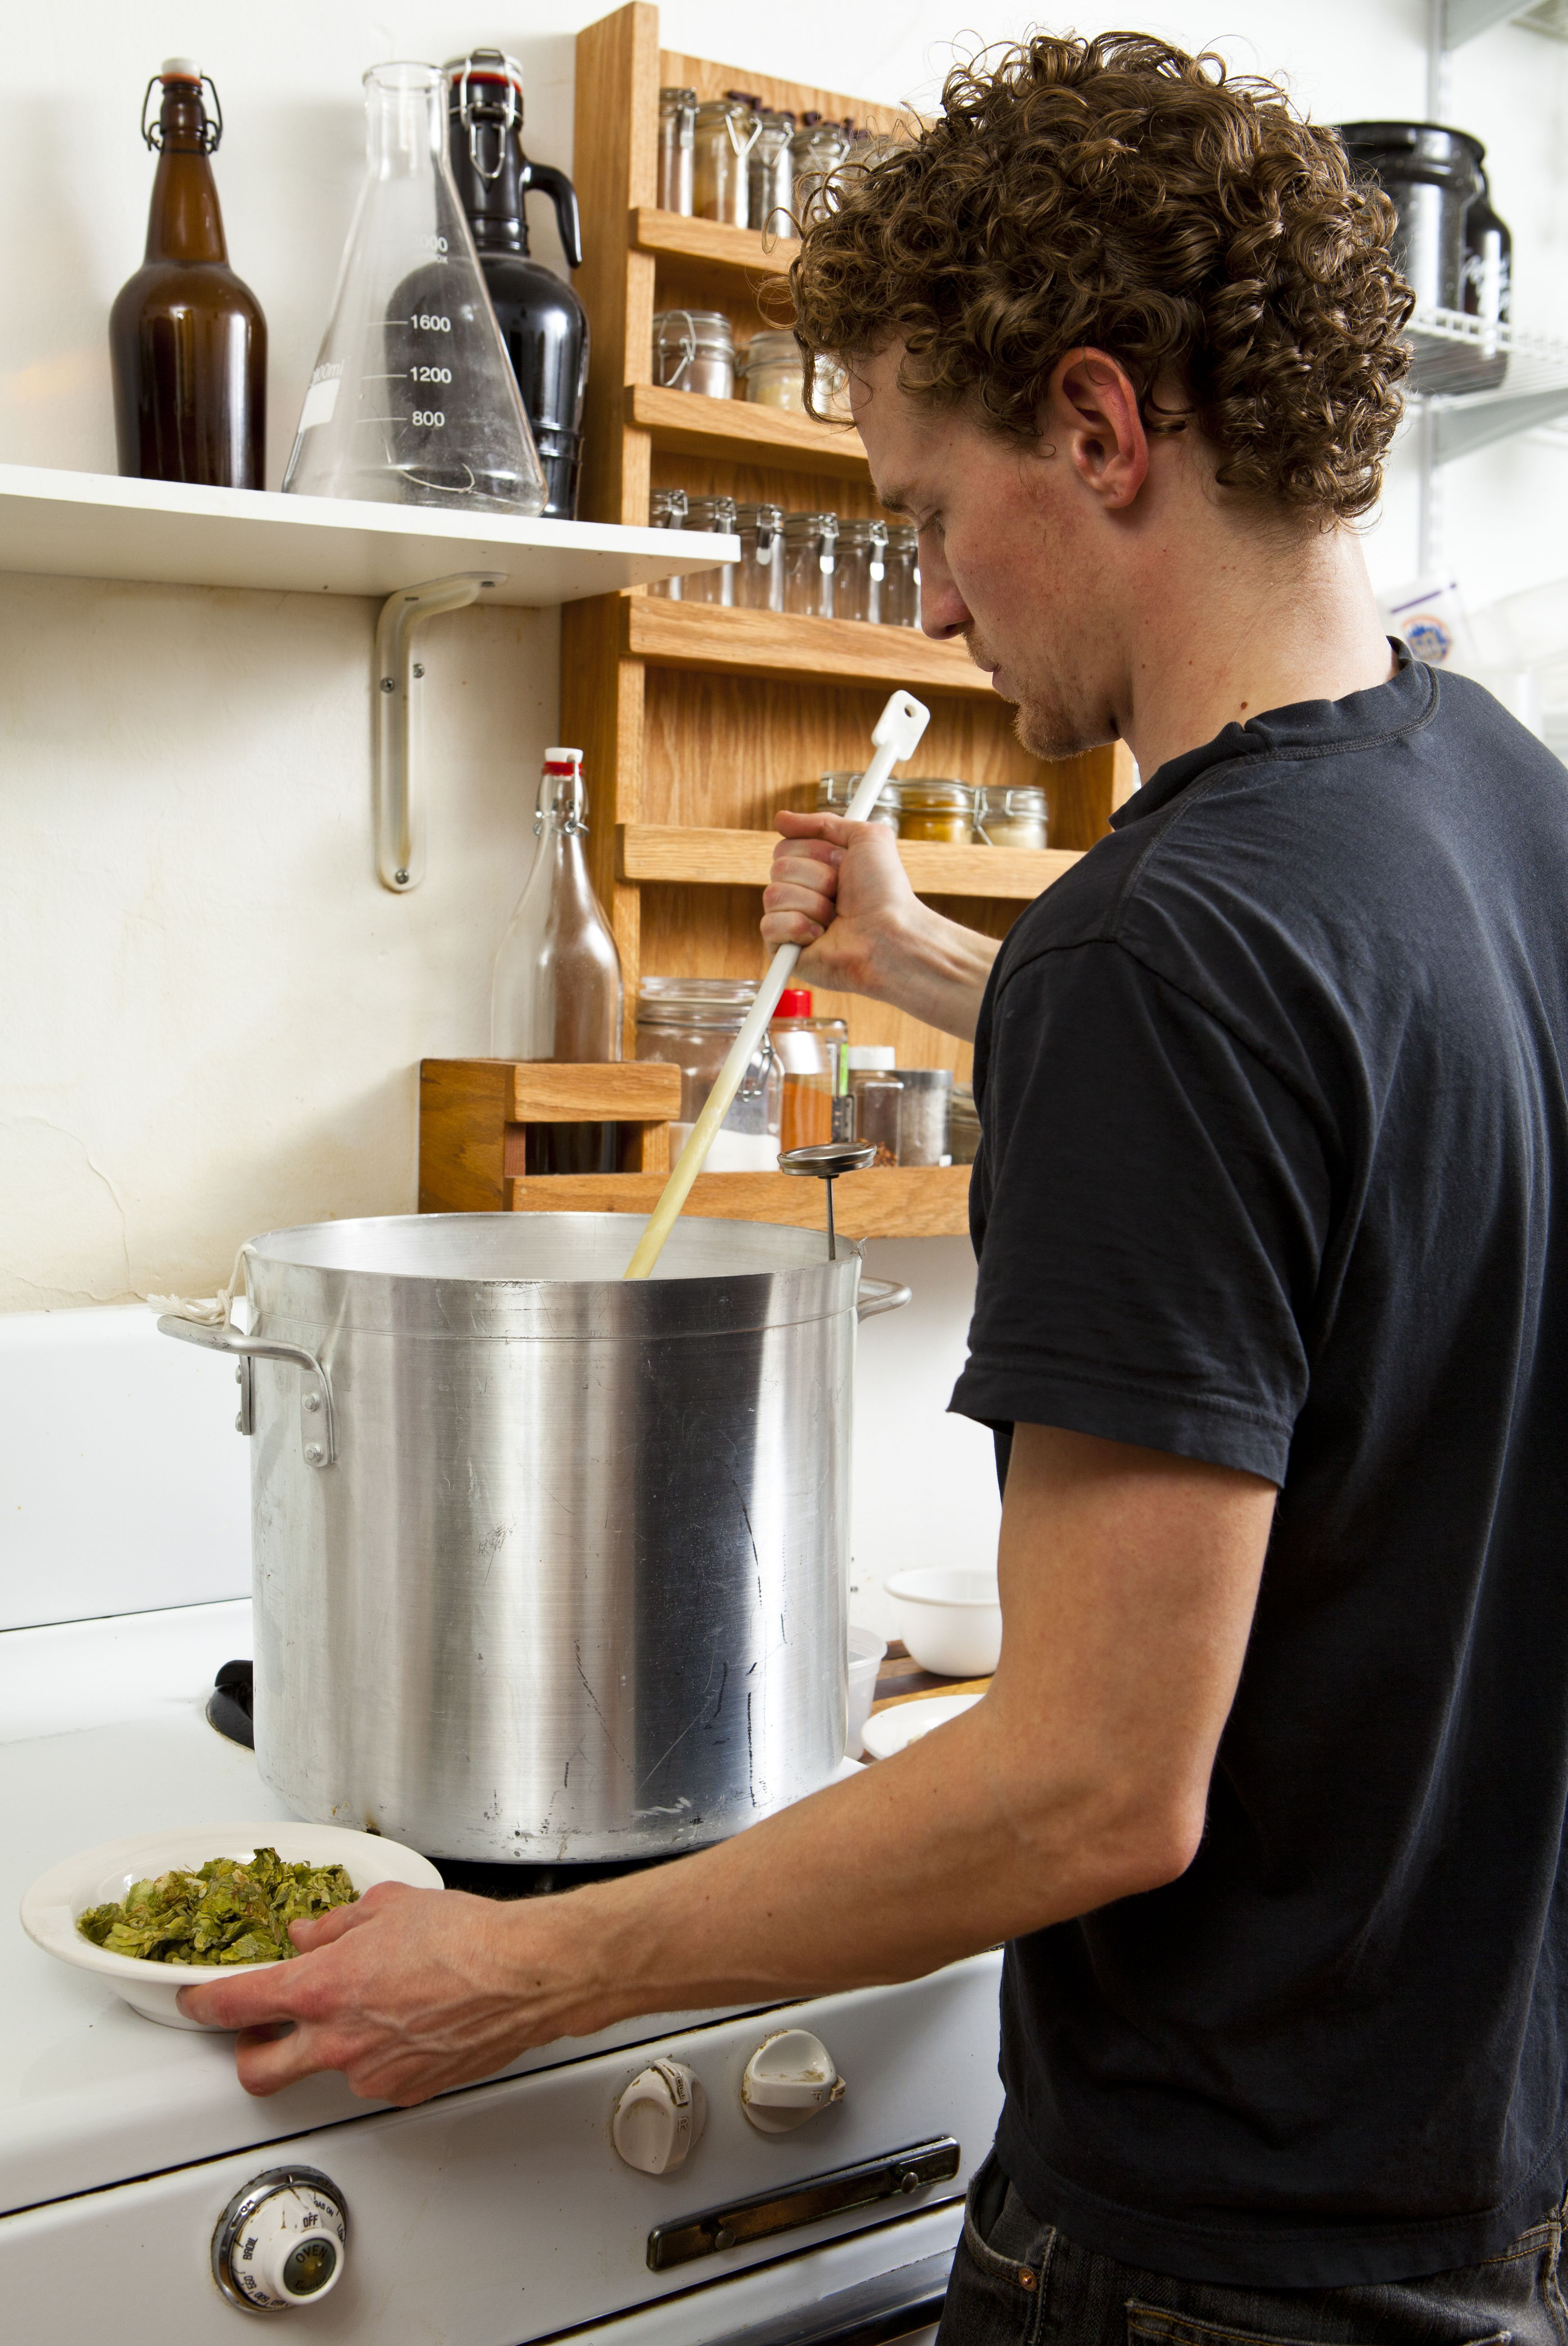 Home beer brewer adding hops to recipe